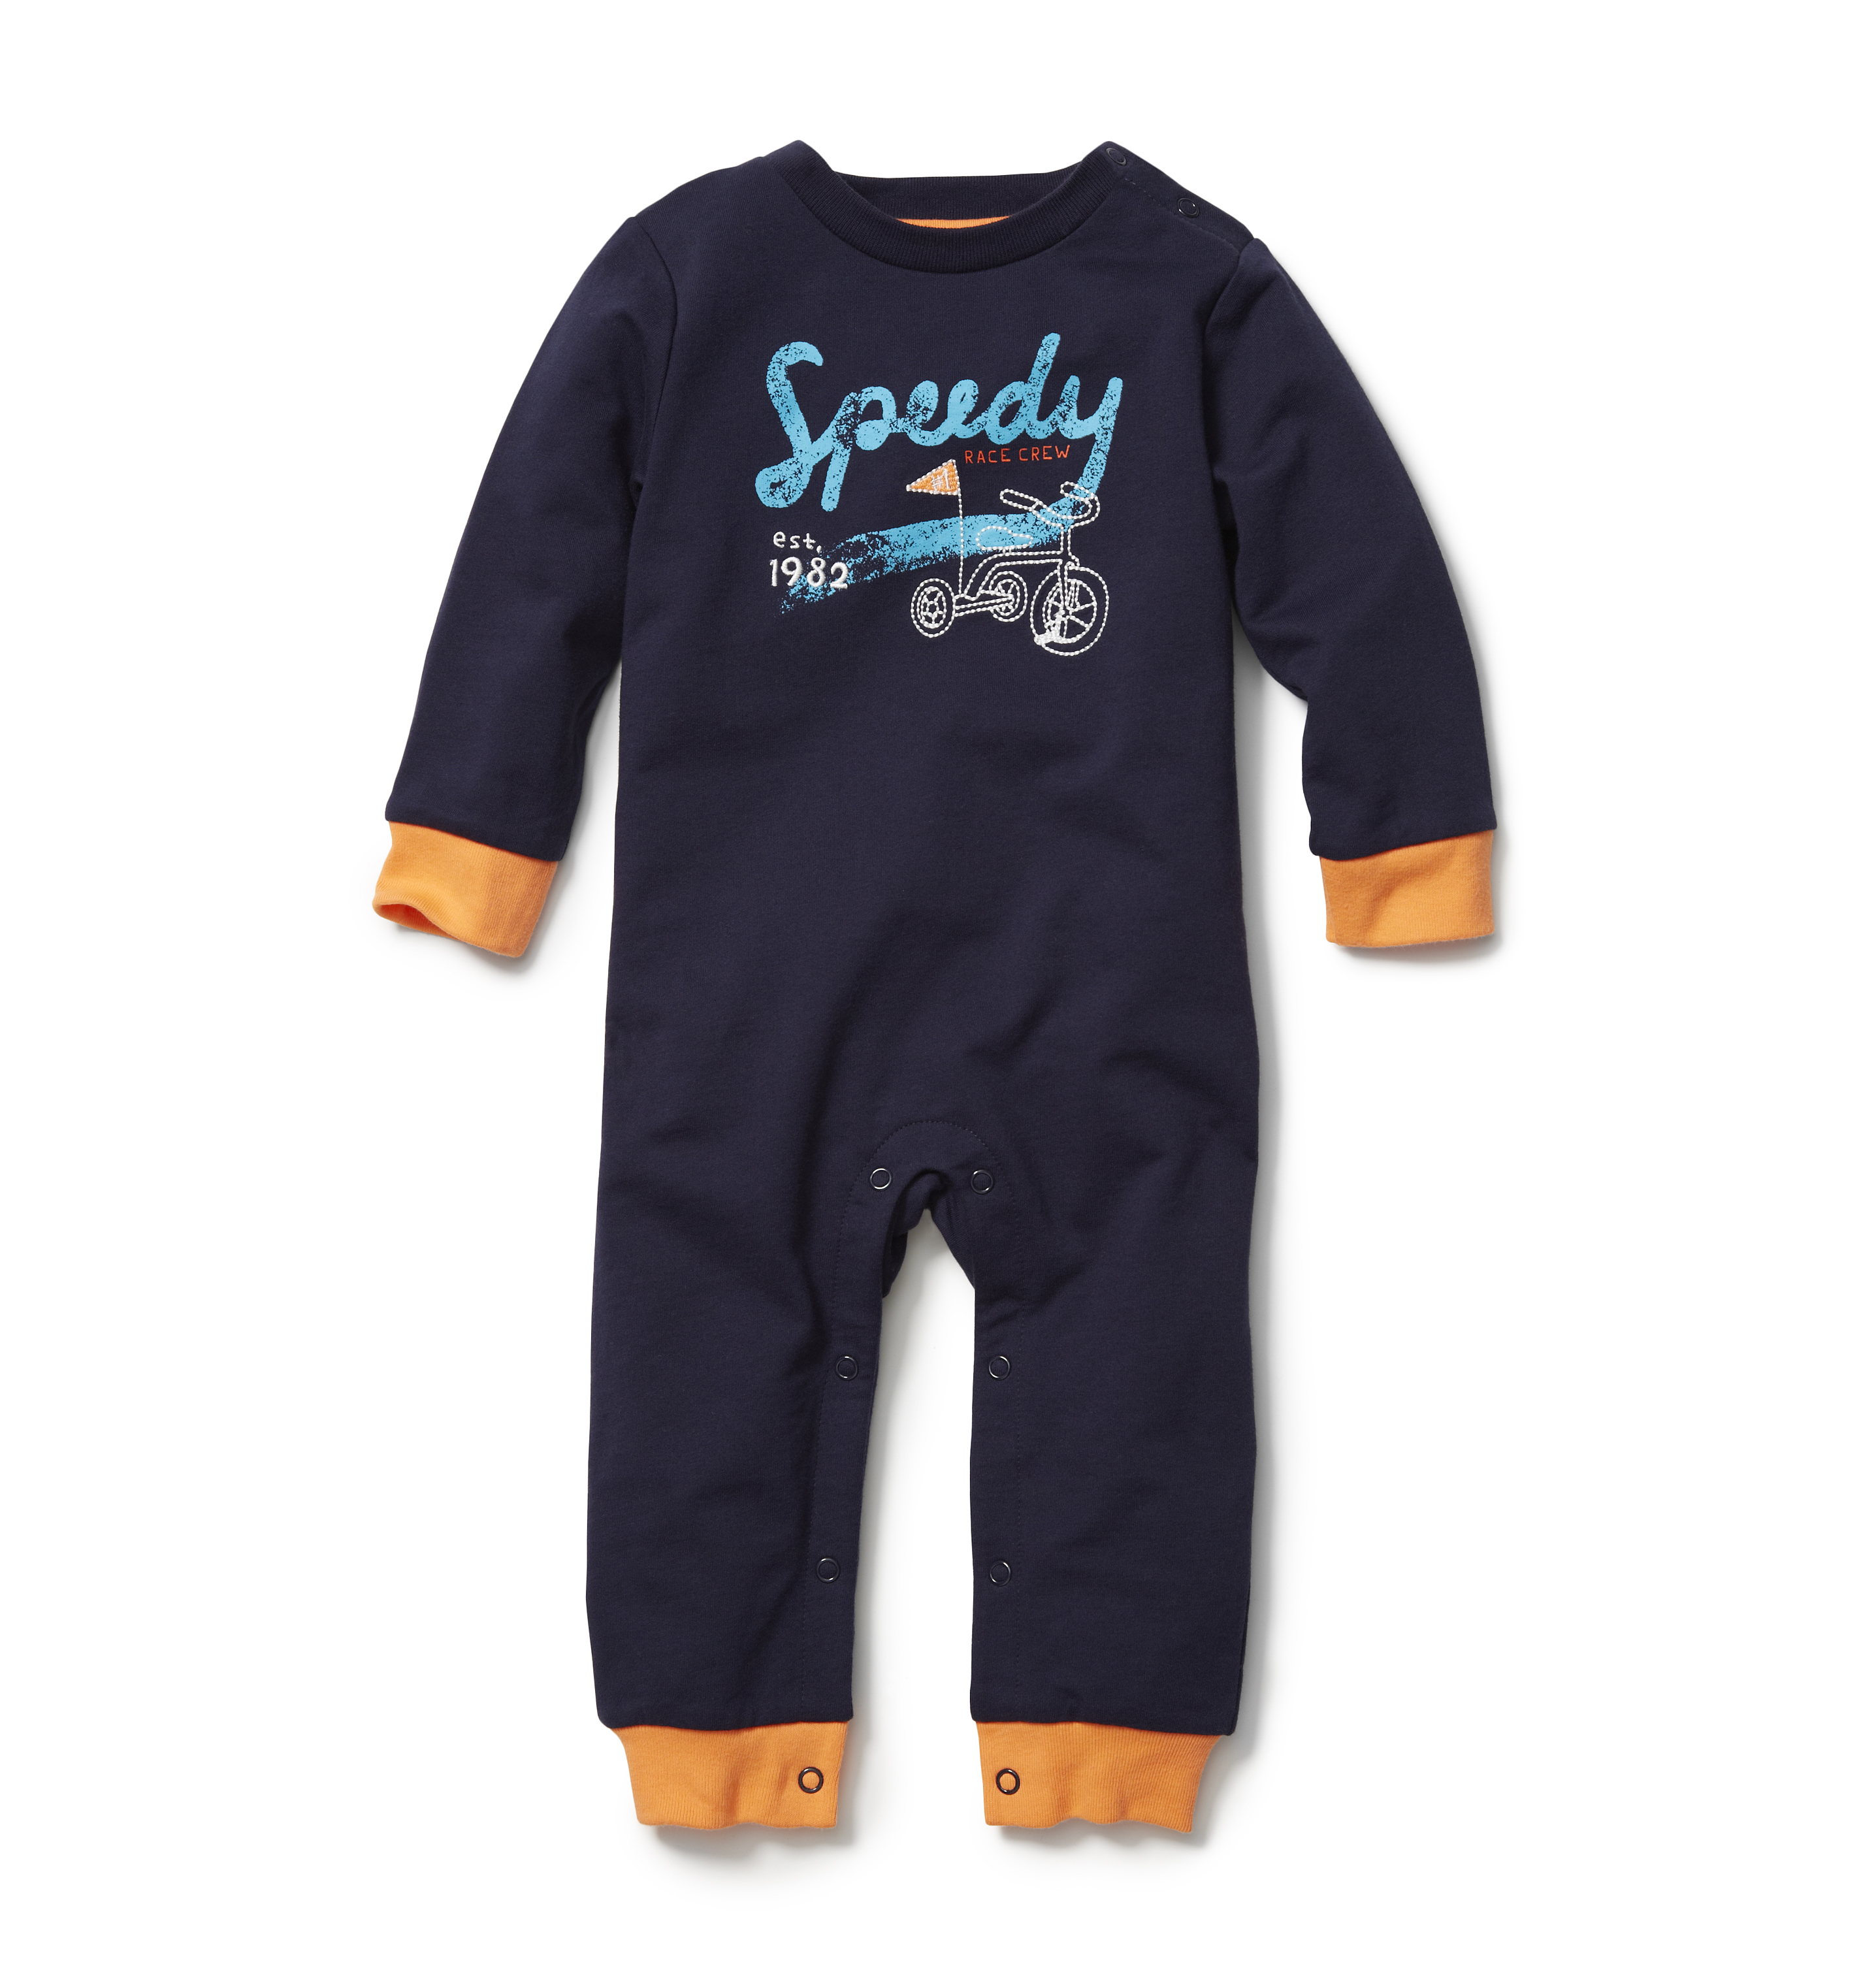 Kids Baby Boy Romper High-res